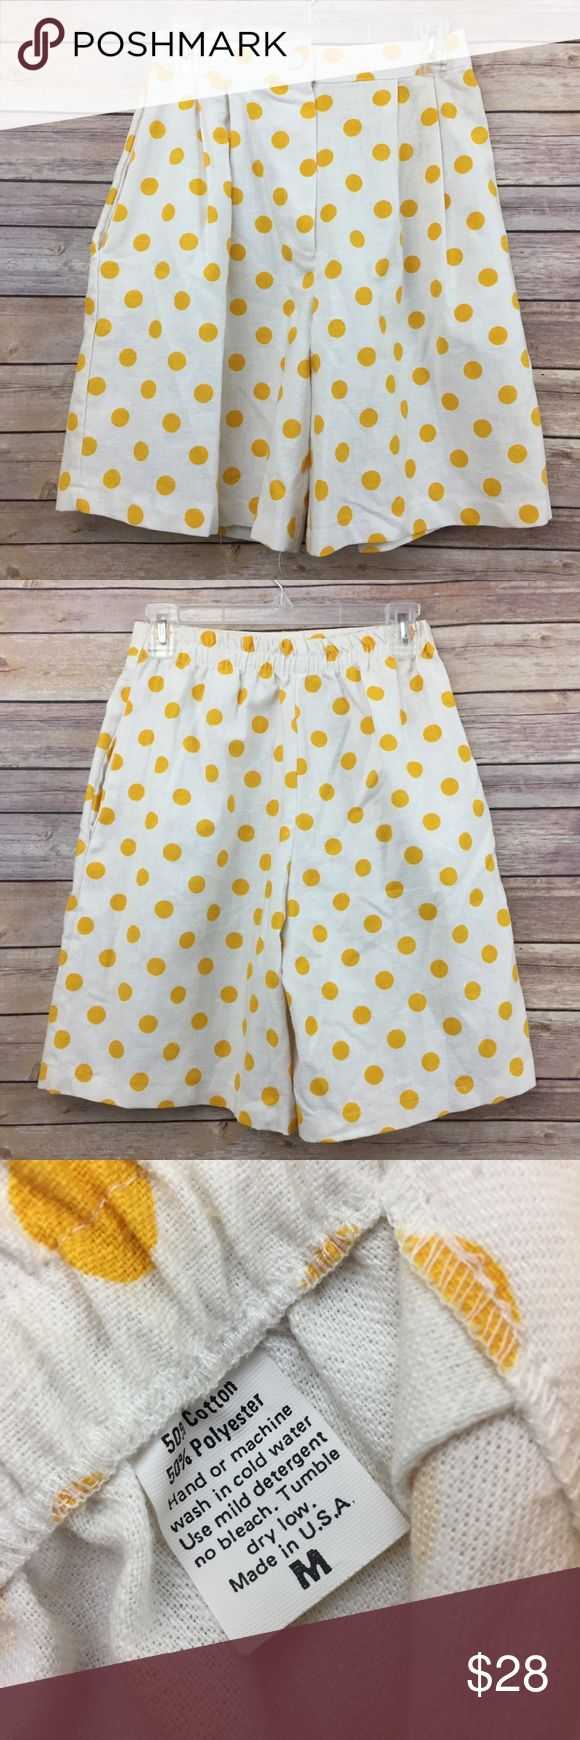 "Vintage 1980's polka dot hi-waist shorts Med 229 These awesome vintage 1980's Polka dot shorts are a high waisted mom style! They are white with bright yellow polka dots and are marked a size medium but as they're vintage check measurements! They measure 13"" flat across the waist with a rise of 14"" and an inseam of 8"".  They are in good preowned condition with no flaws and light overall wear Vintage Shorts Bermudas"